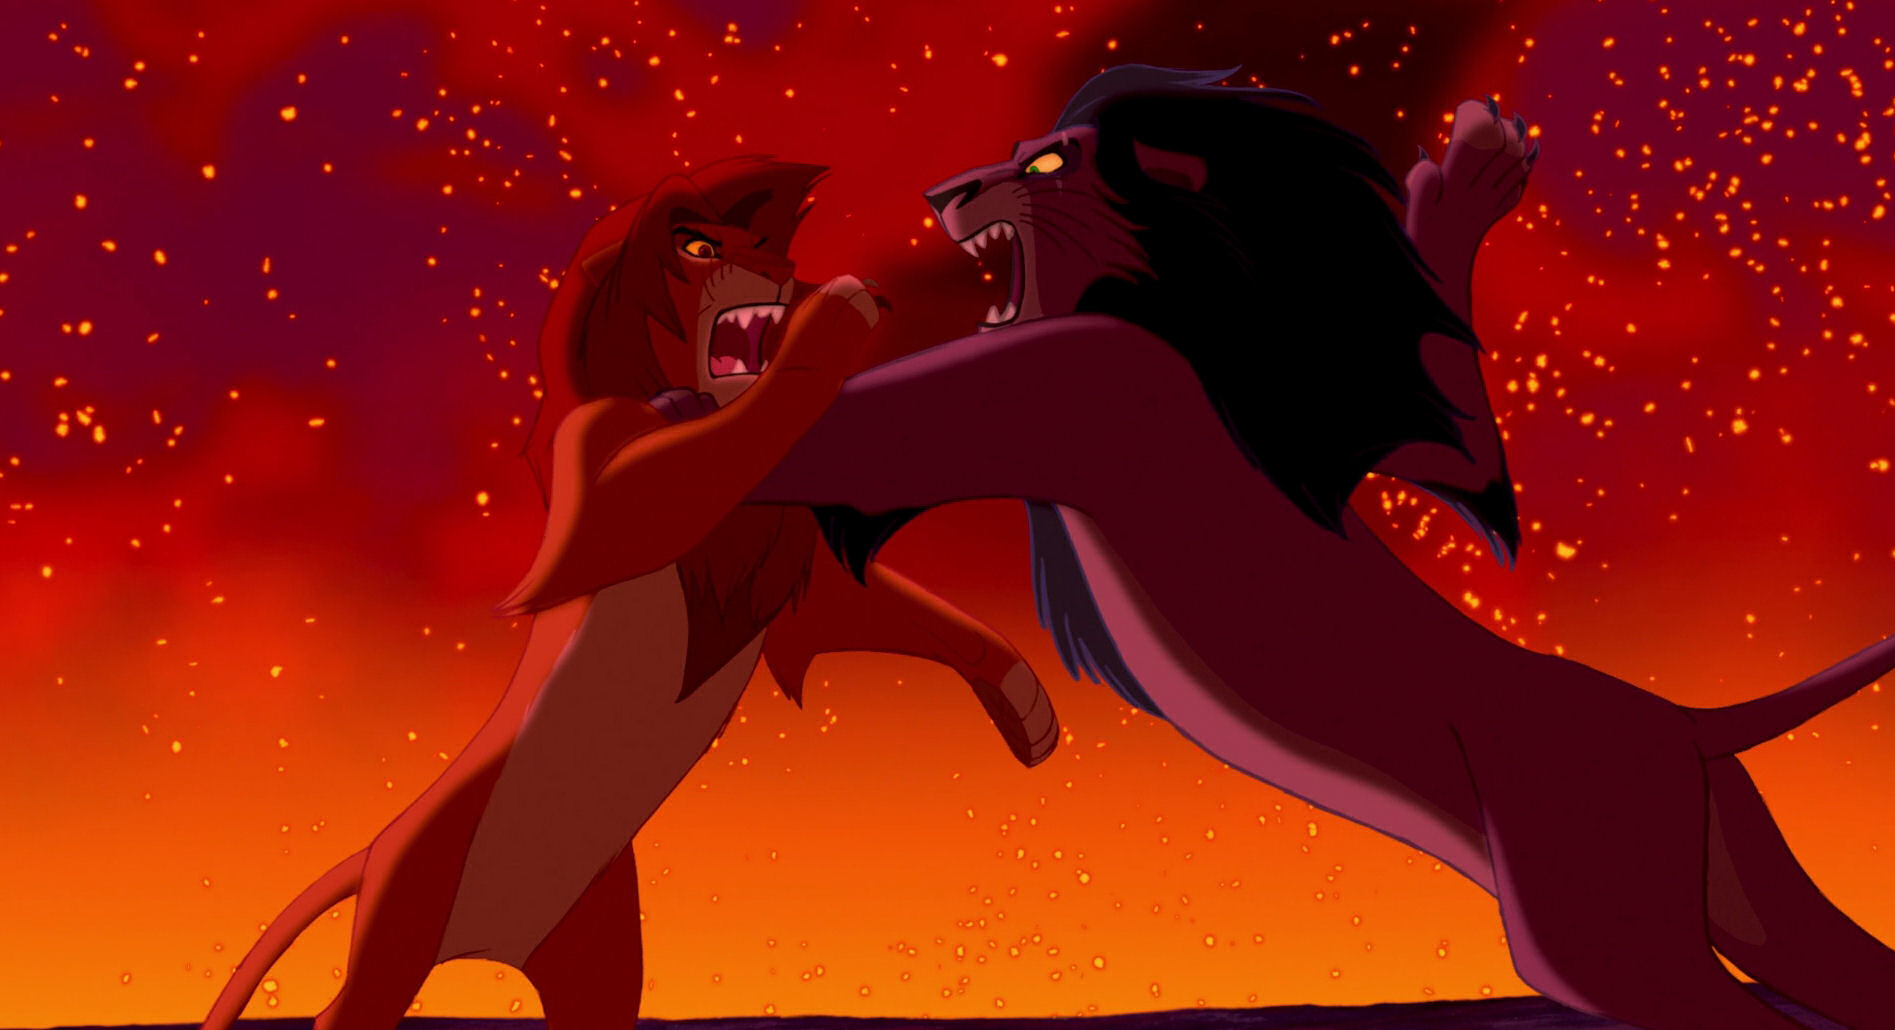 the battle between good and evil in the lion king The lion king ii: simba's pridenote later retitled with the arabic numeral 2 as the lion king 2: (scar and the hyenas are evil everyone else is good).